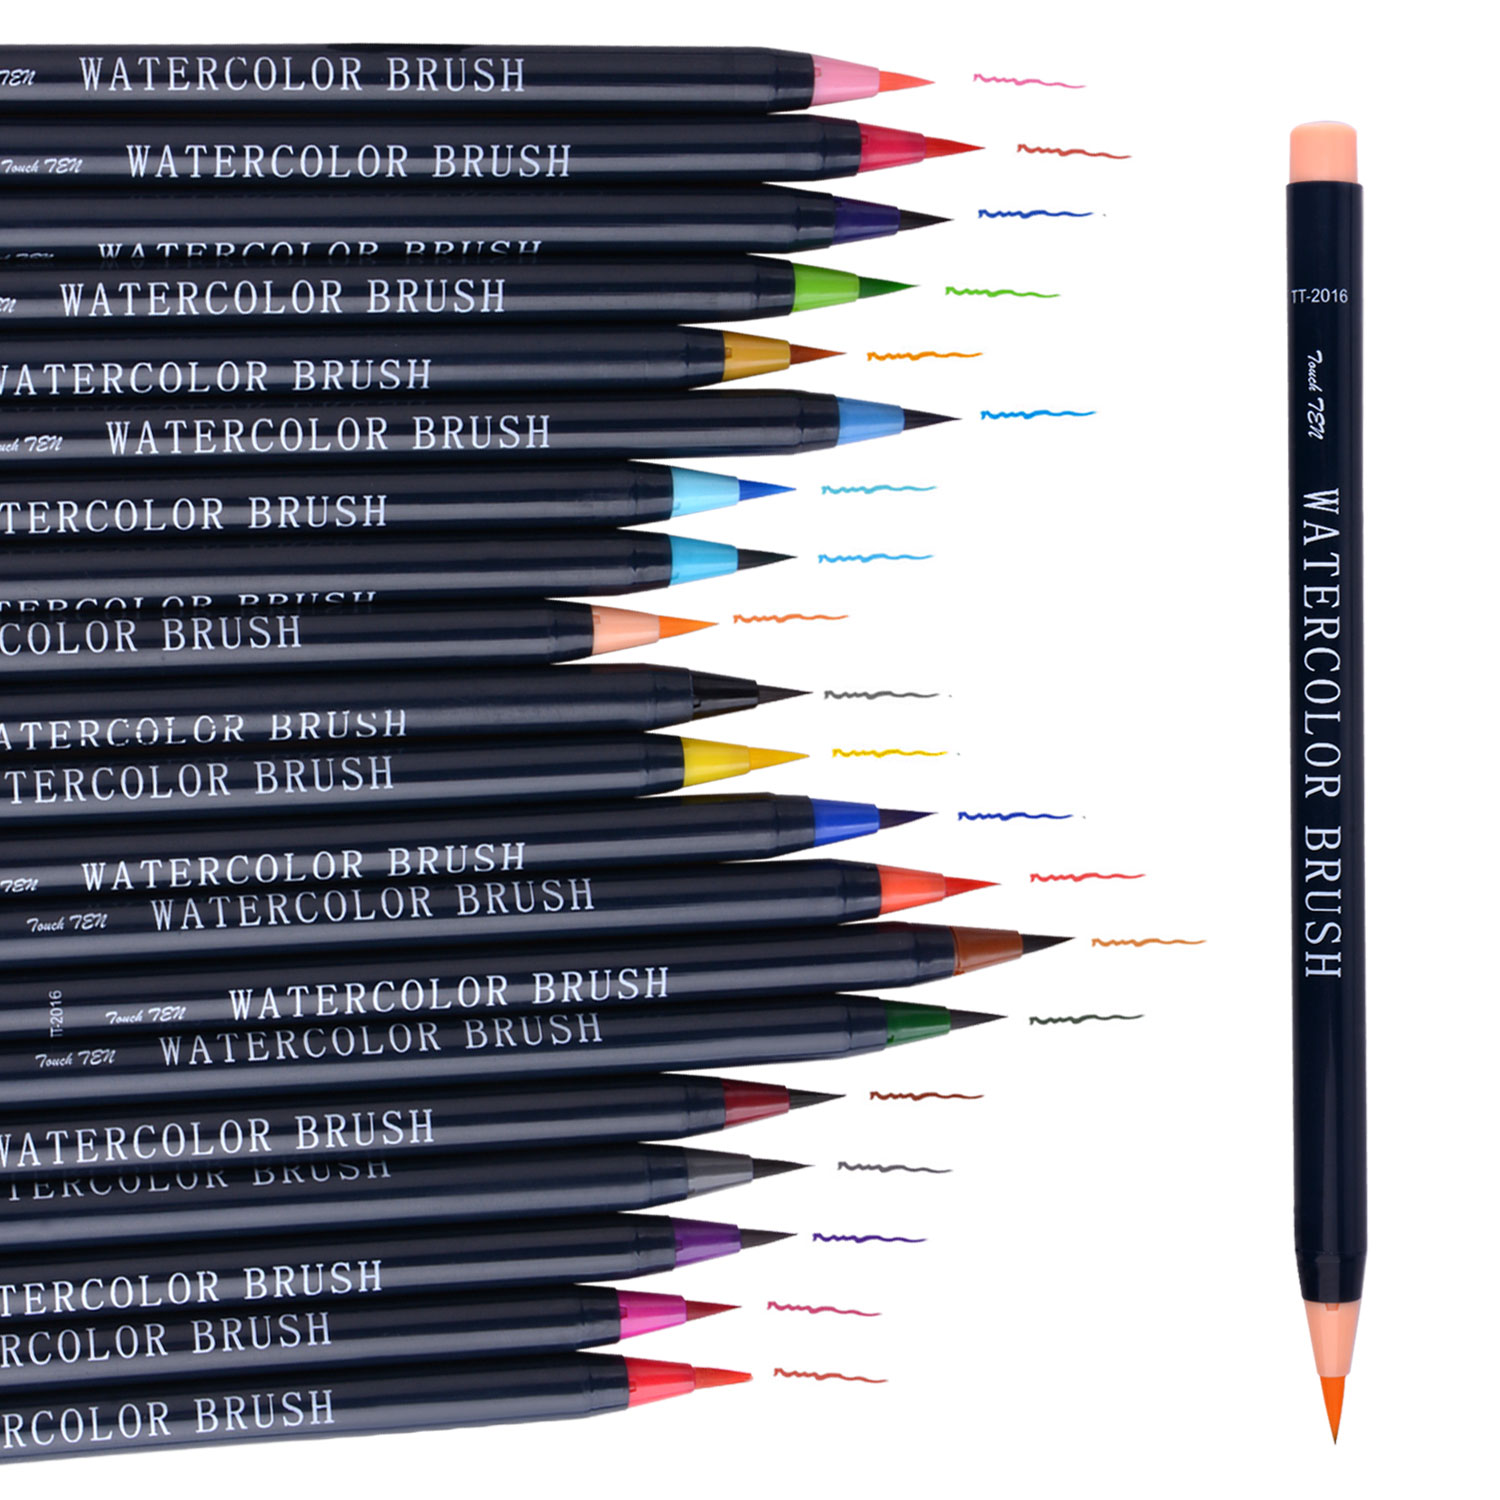 20 Colors Premium Painting Soft Brush Pen Set Watercolor Markers Pen Effect Best For Coloring Books Manga Comic Calligraphy 20 color painting soft brush pen set watercolor markers pen effect best for coloring books student art painting supplies